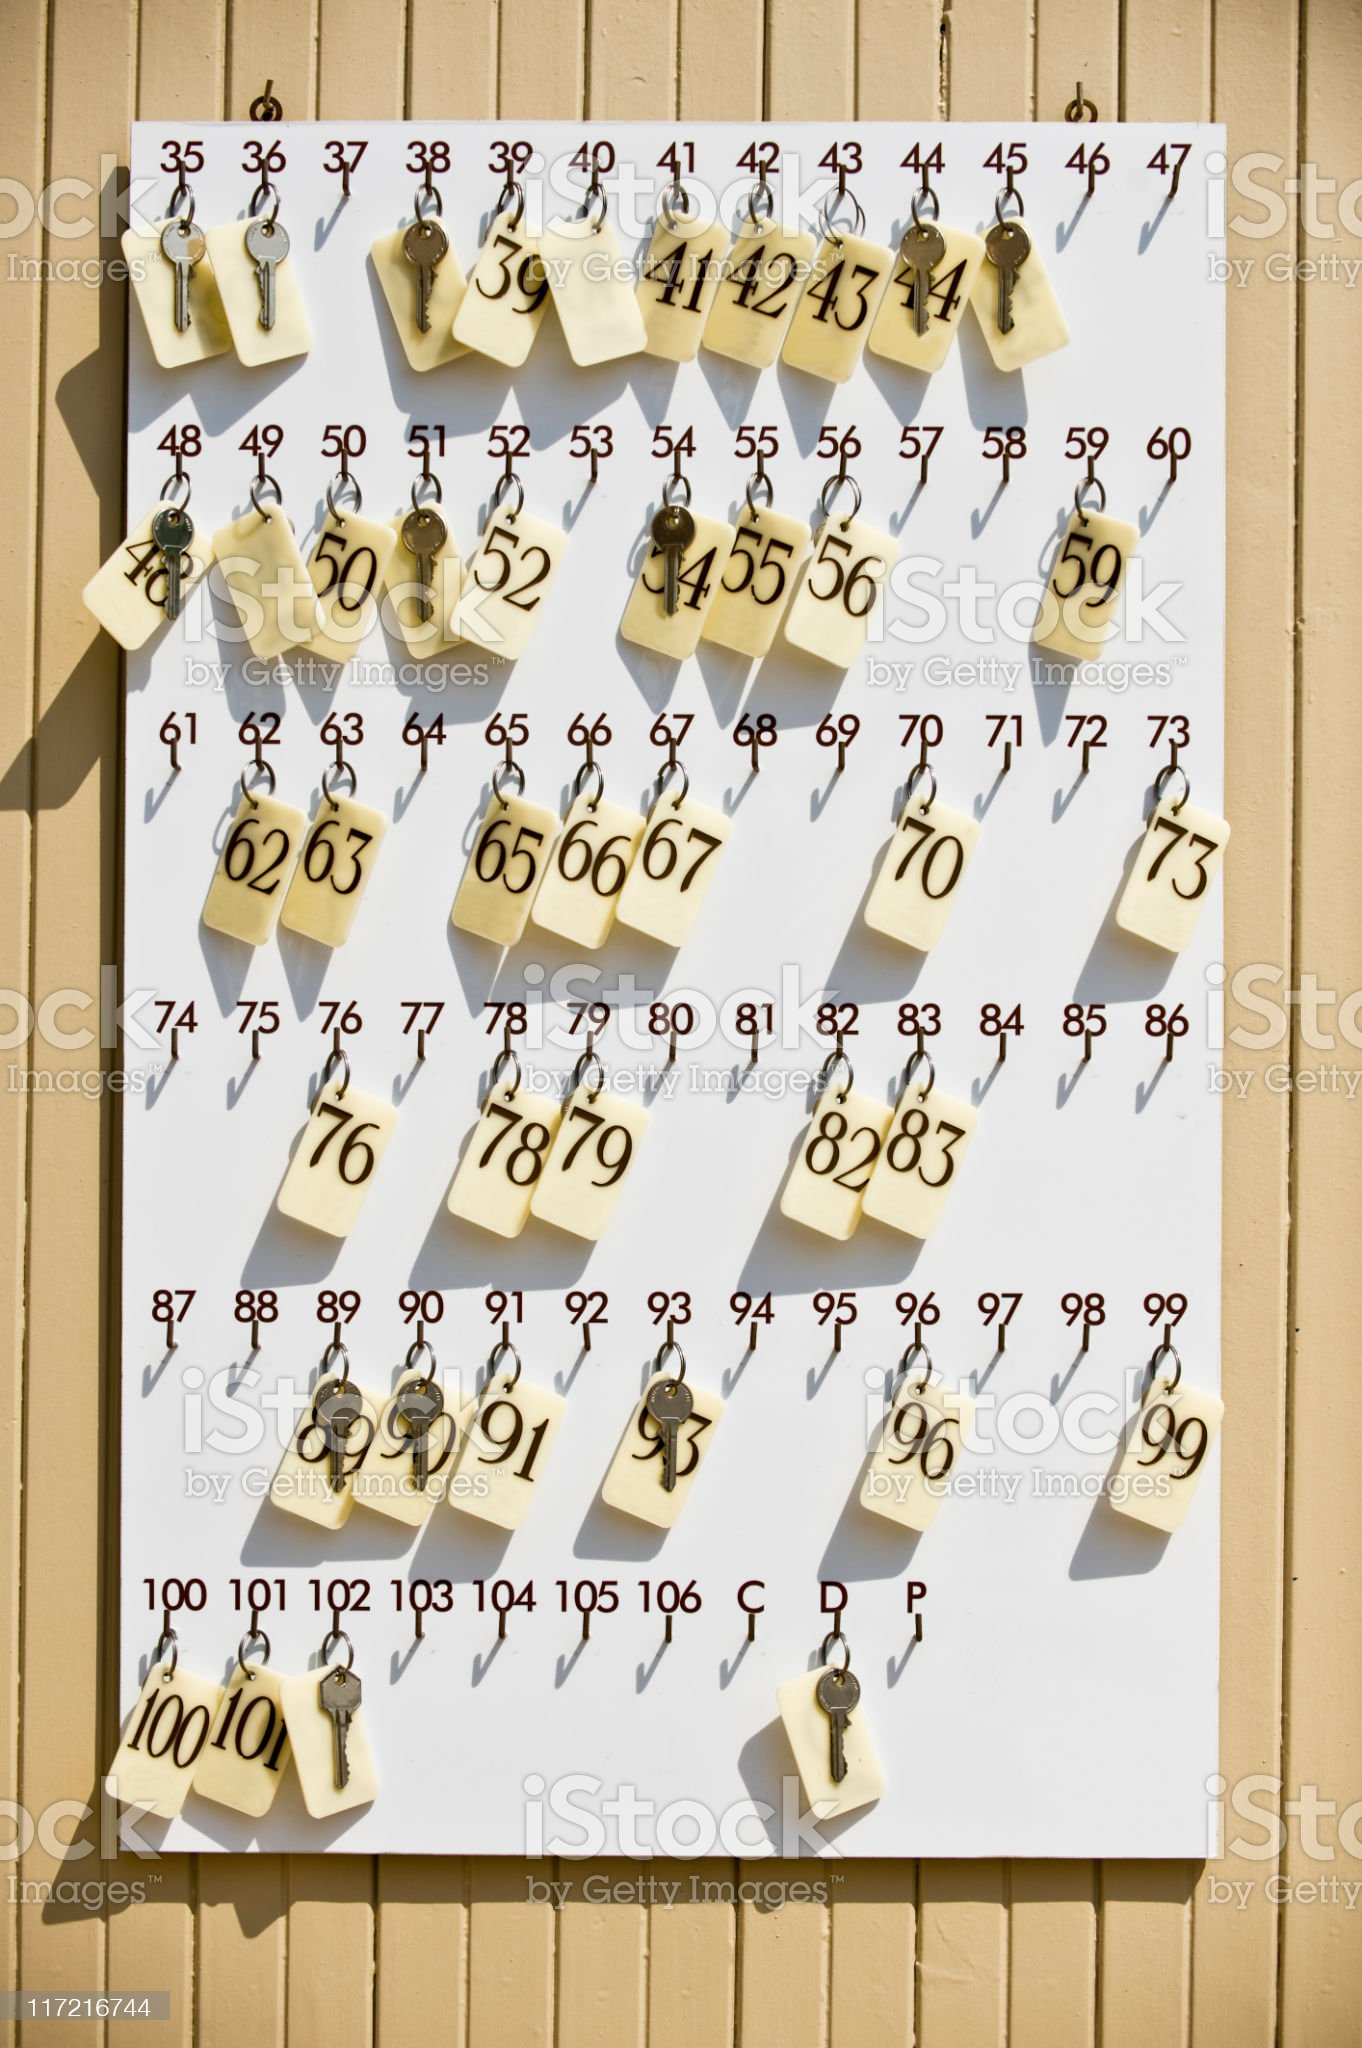 Keys. Color Image royalty-free stock photo